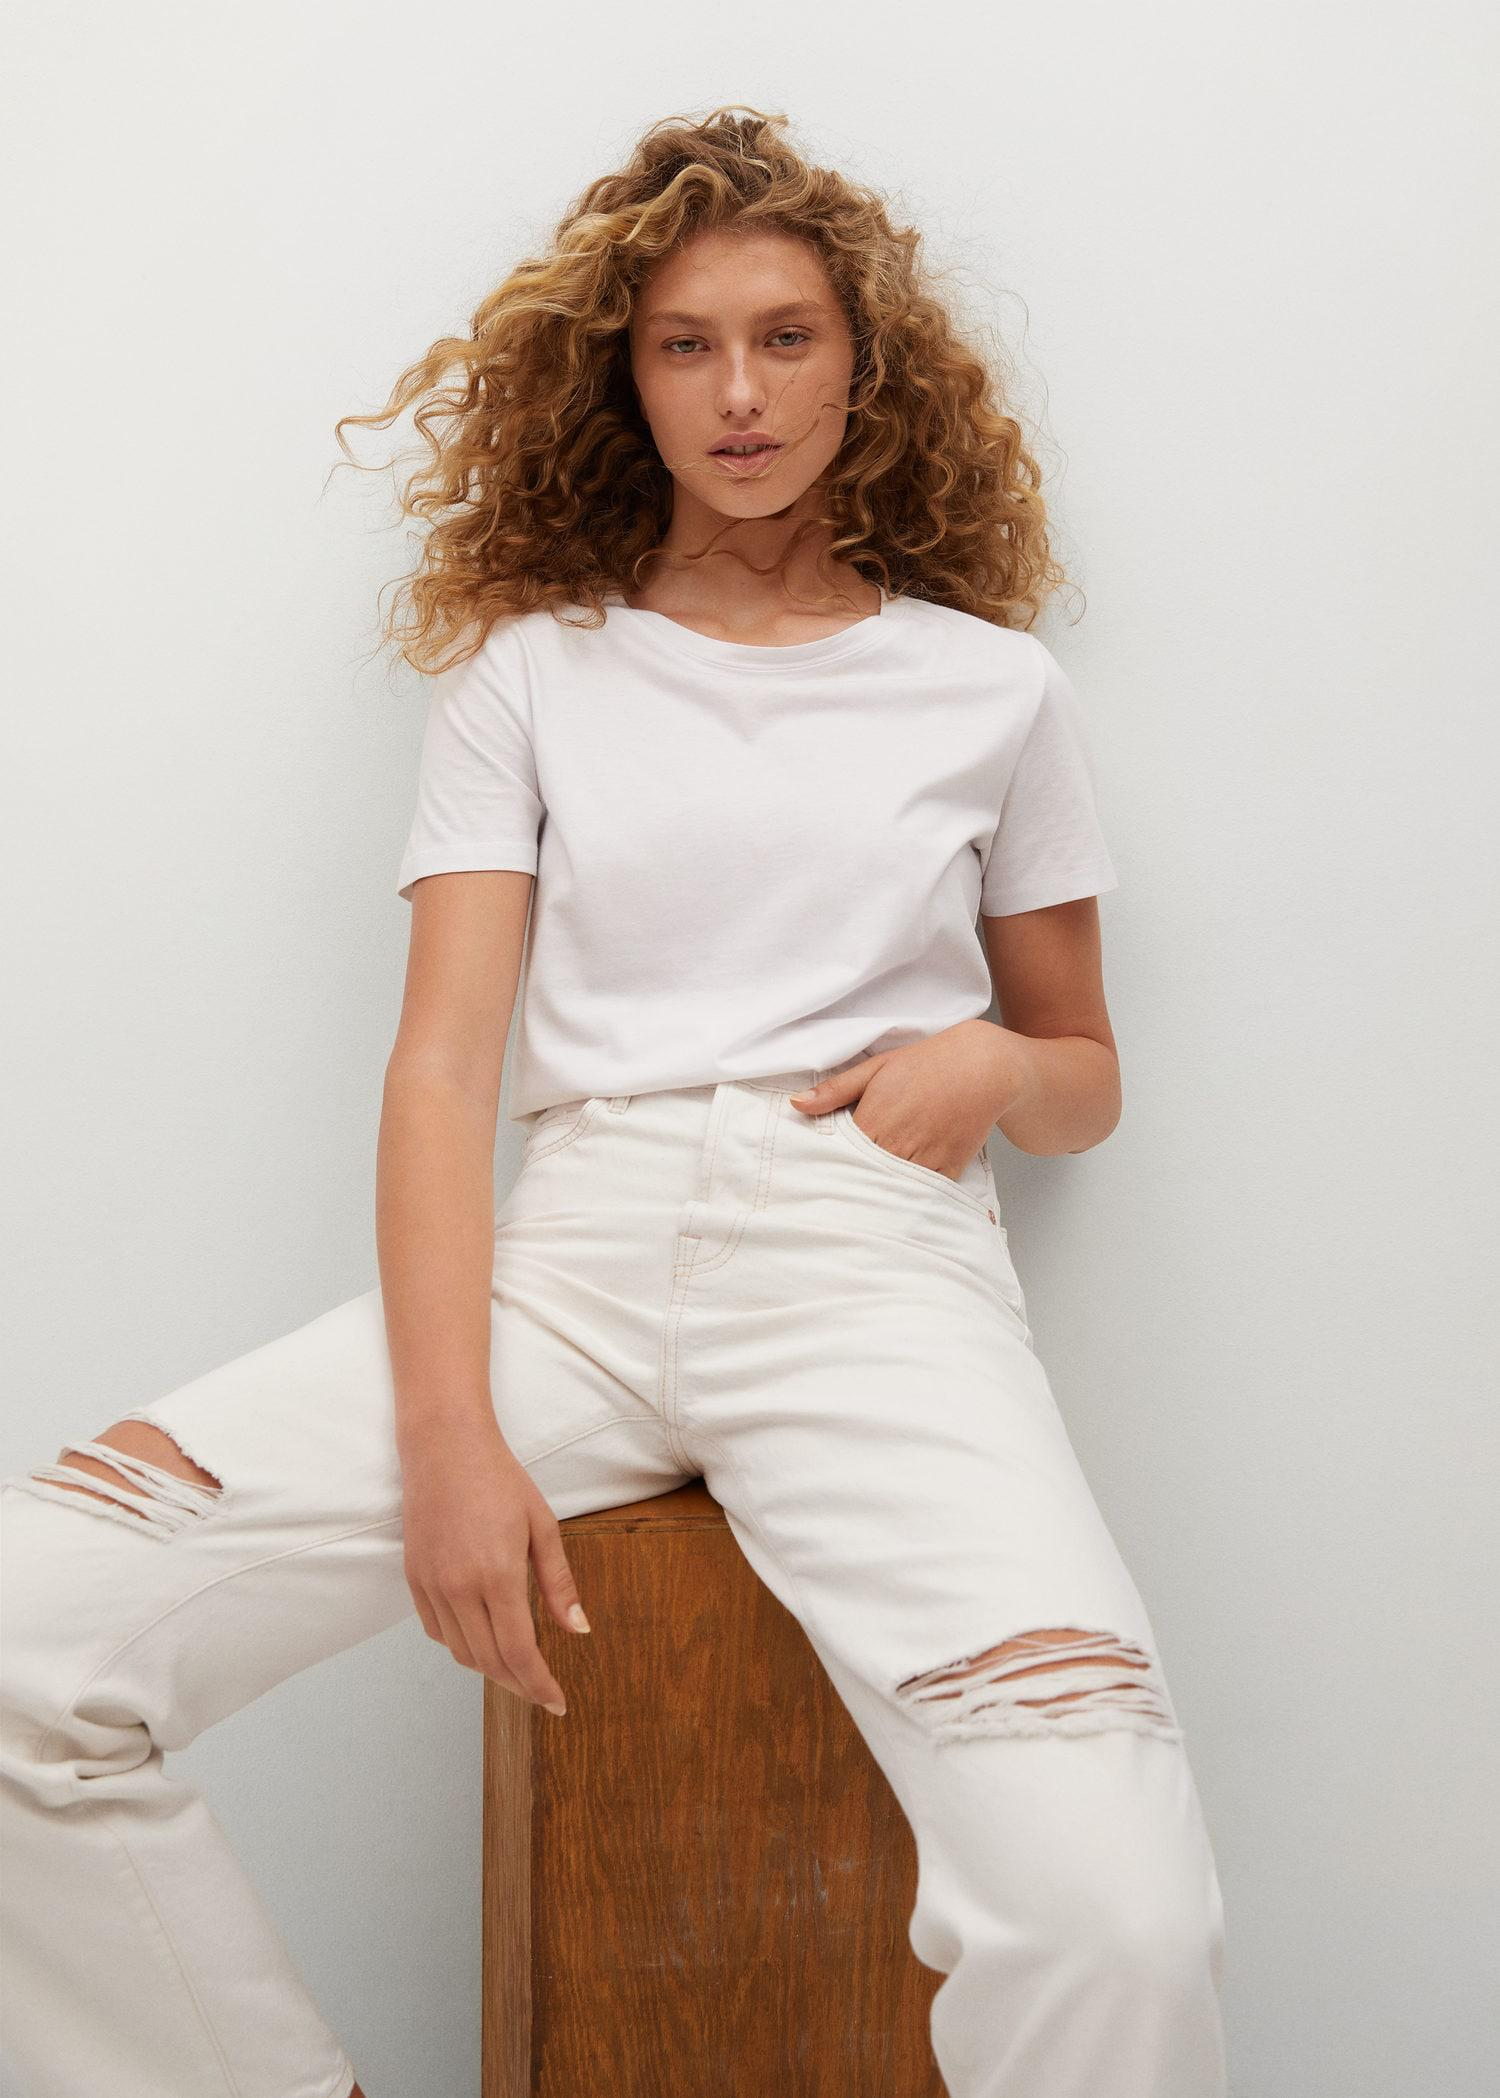 Decorative rips relaxed jeans 4